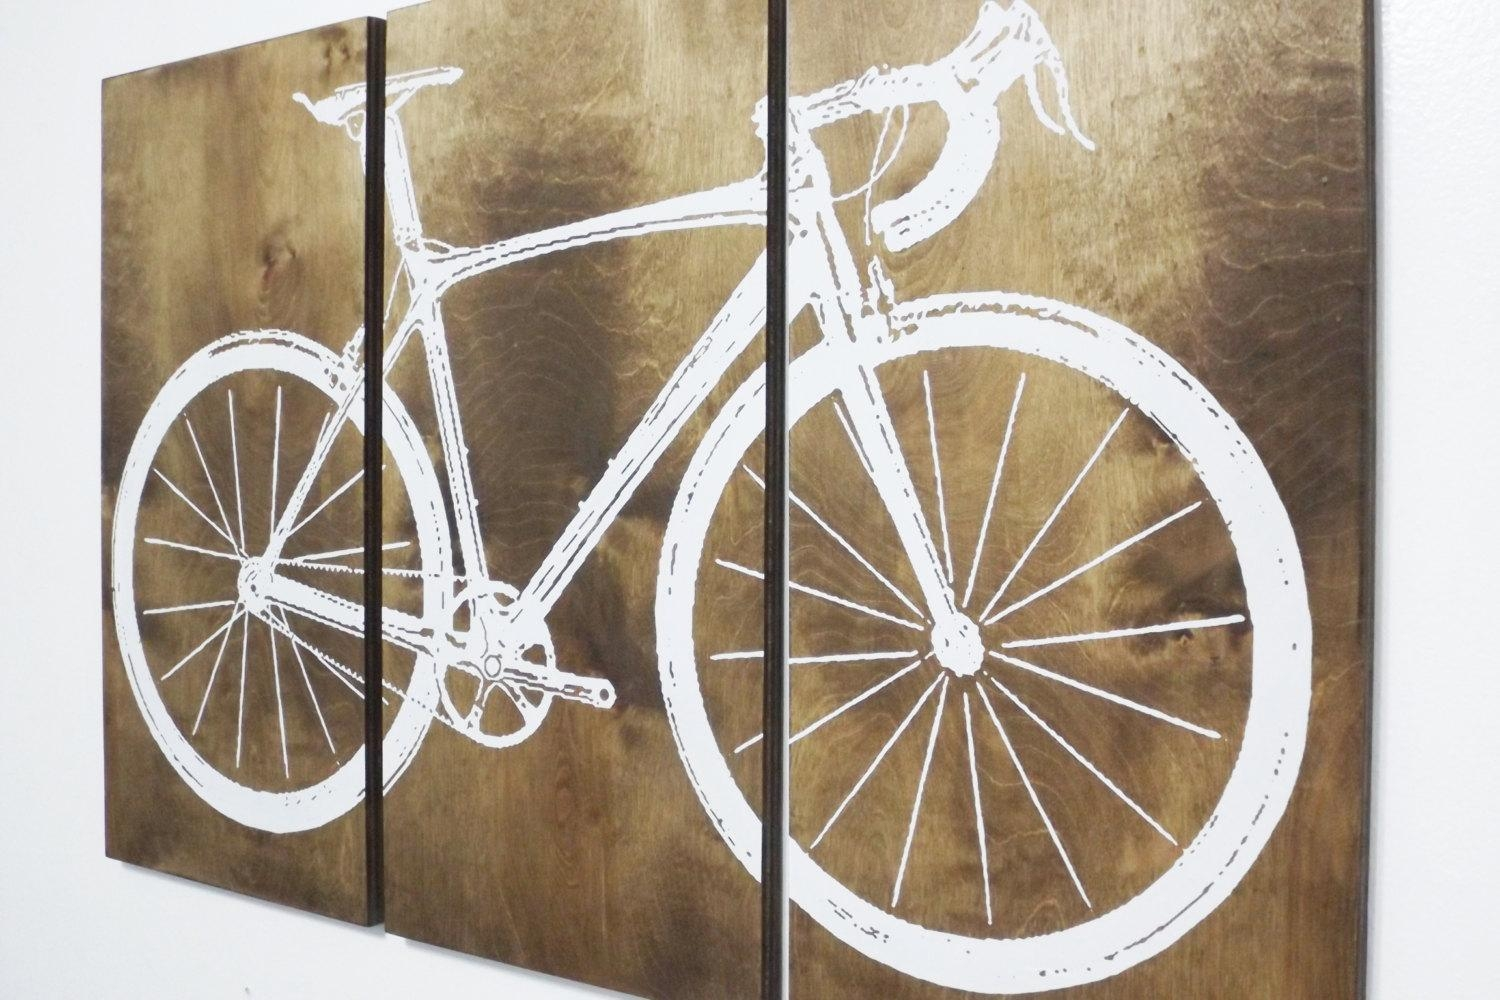 Road Bike / Street Bike Wall Art / Bicycle Screen Print / Wood Regarding Bike Wall Art (Image 14 of 20)